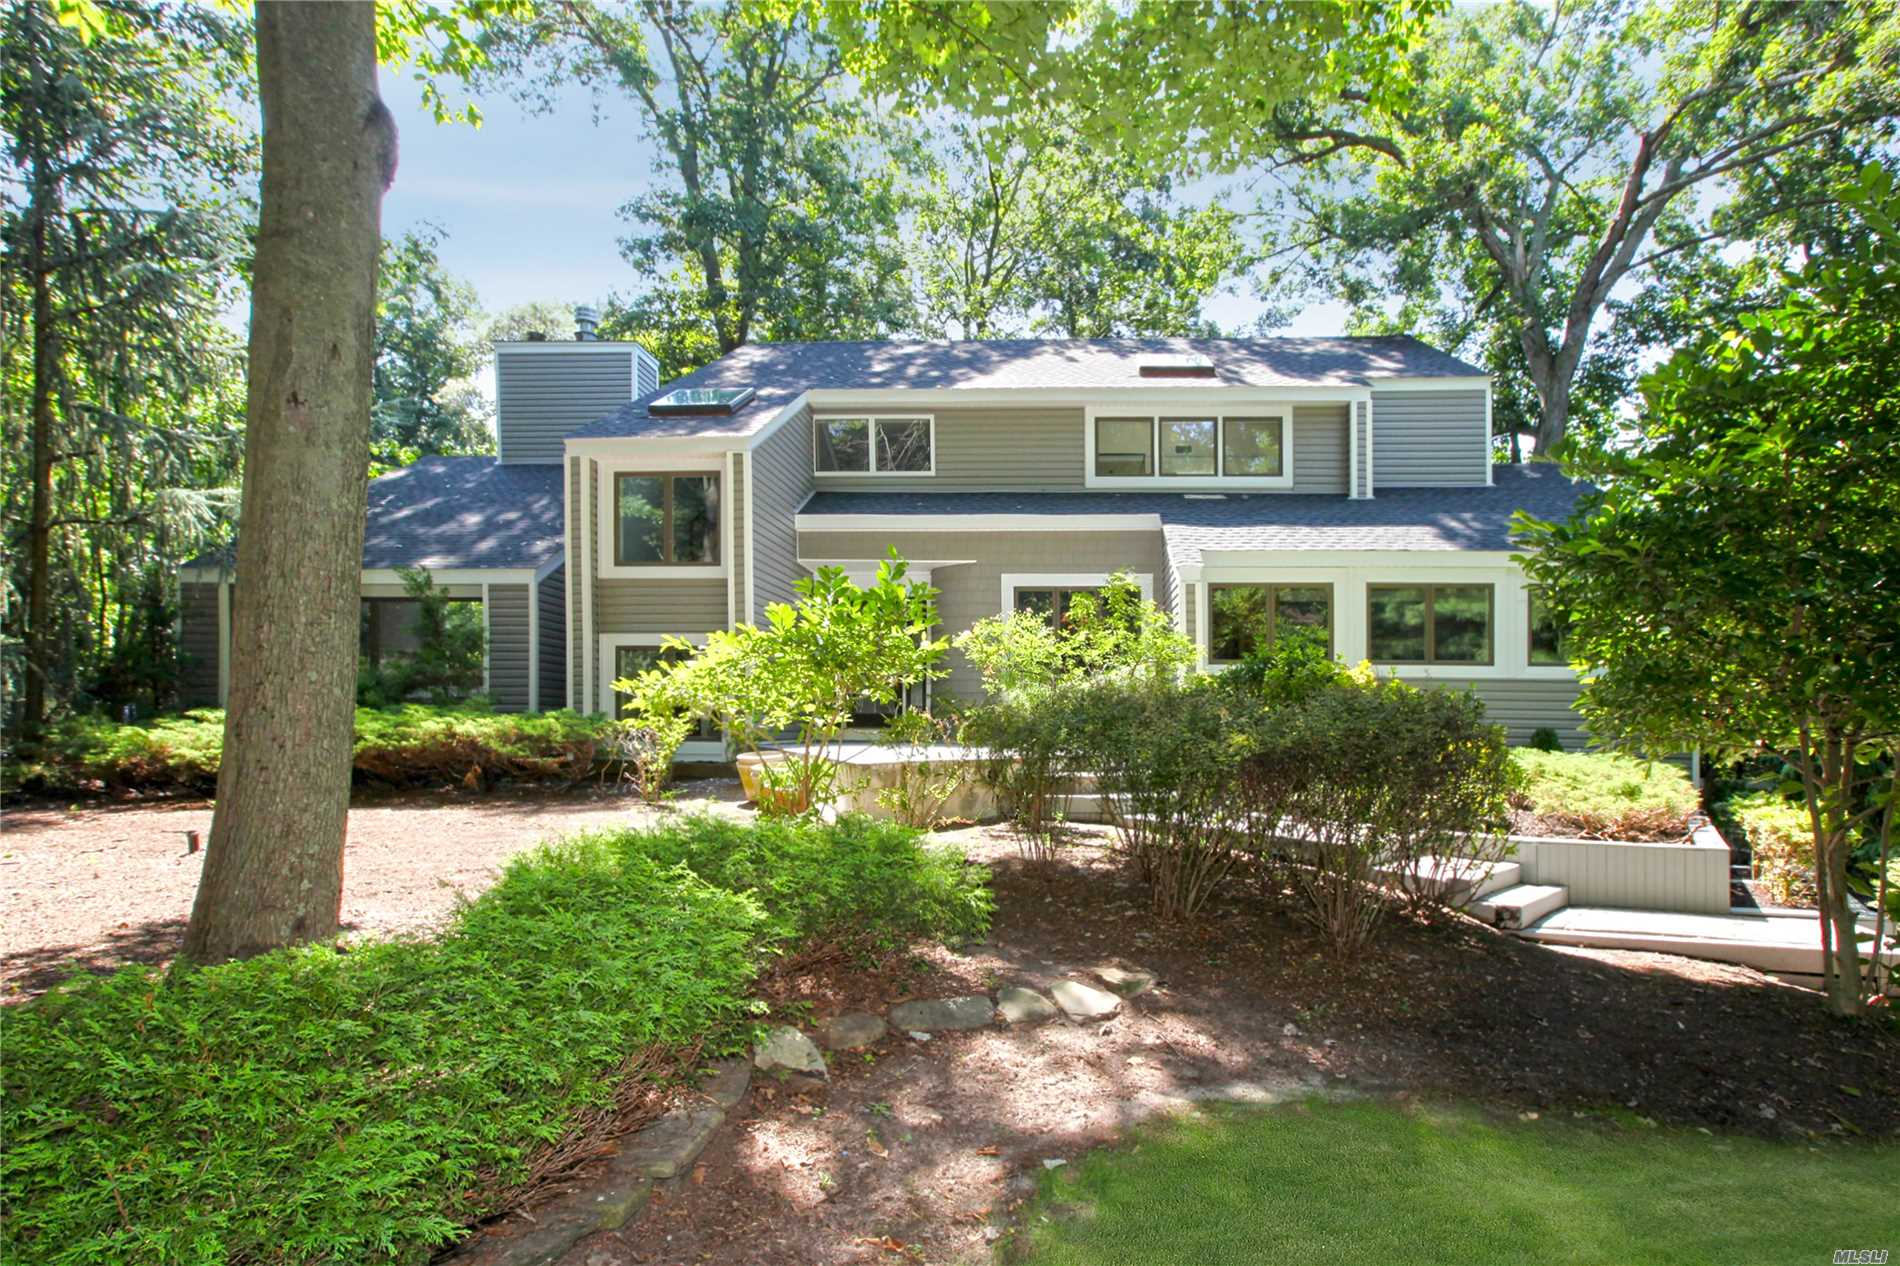 14 Silver Beech Ct - Setauket, New York